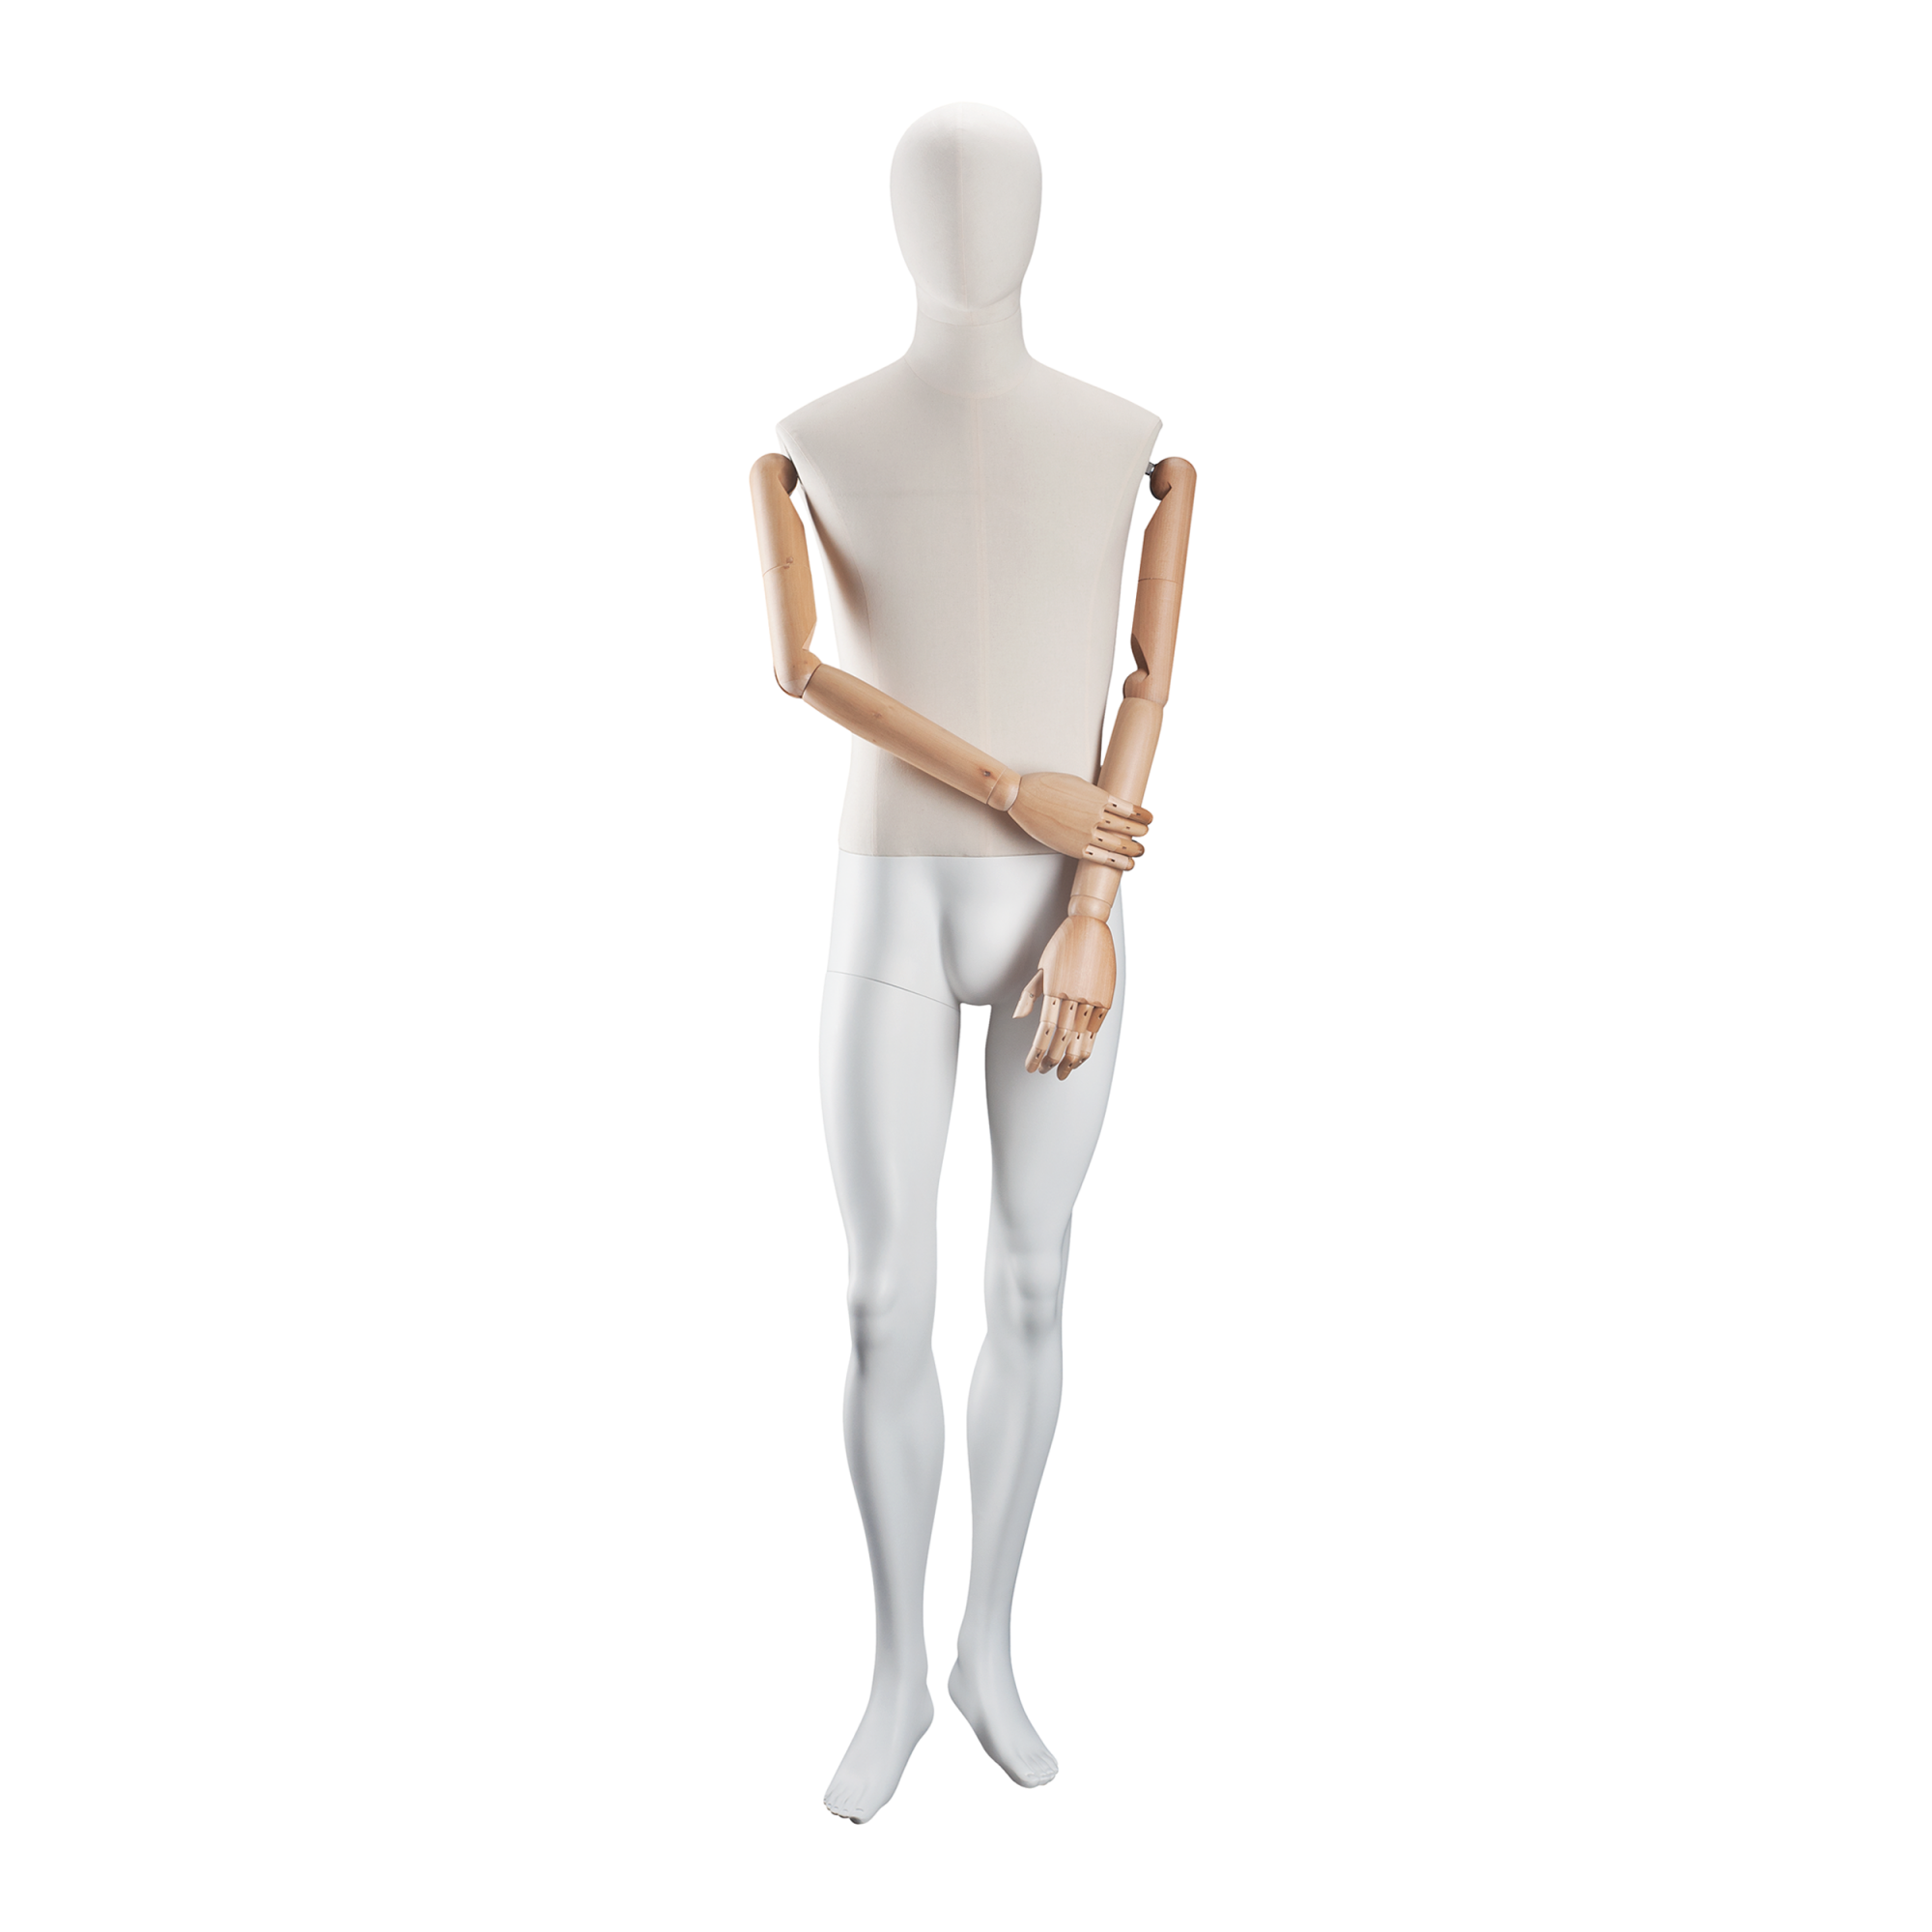 Ihram Kids For Sale Dubai: Abstract Male Mannequin No. ATM-W7